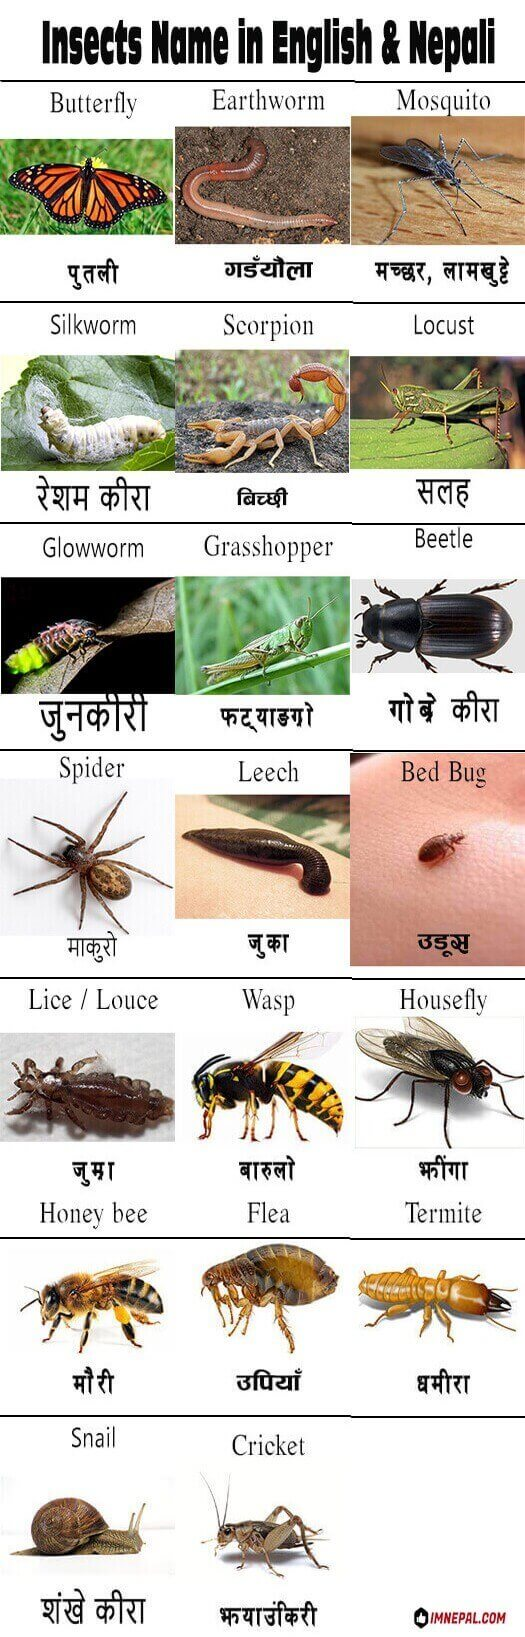 Name of 22 Worms And Insects in Nepali and English Language